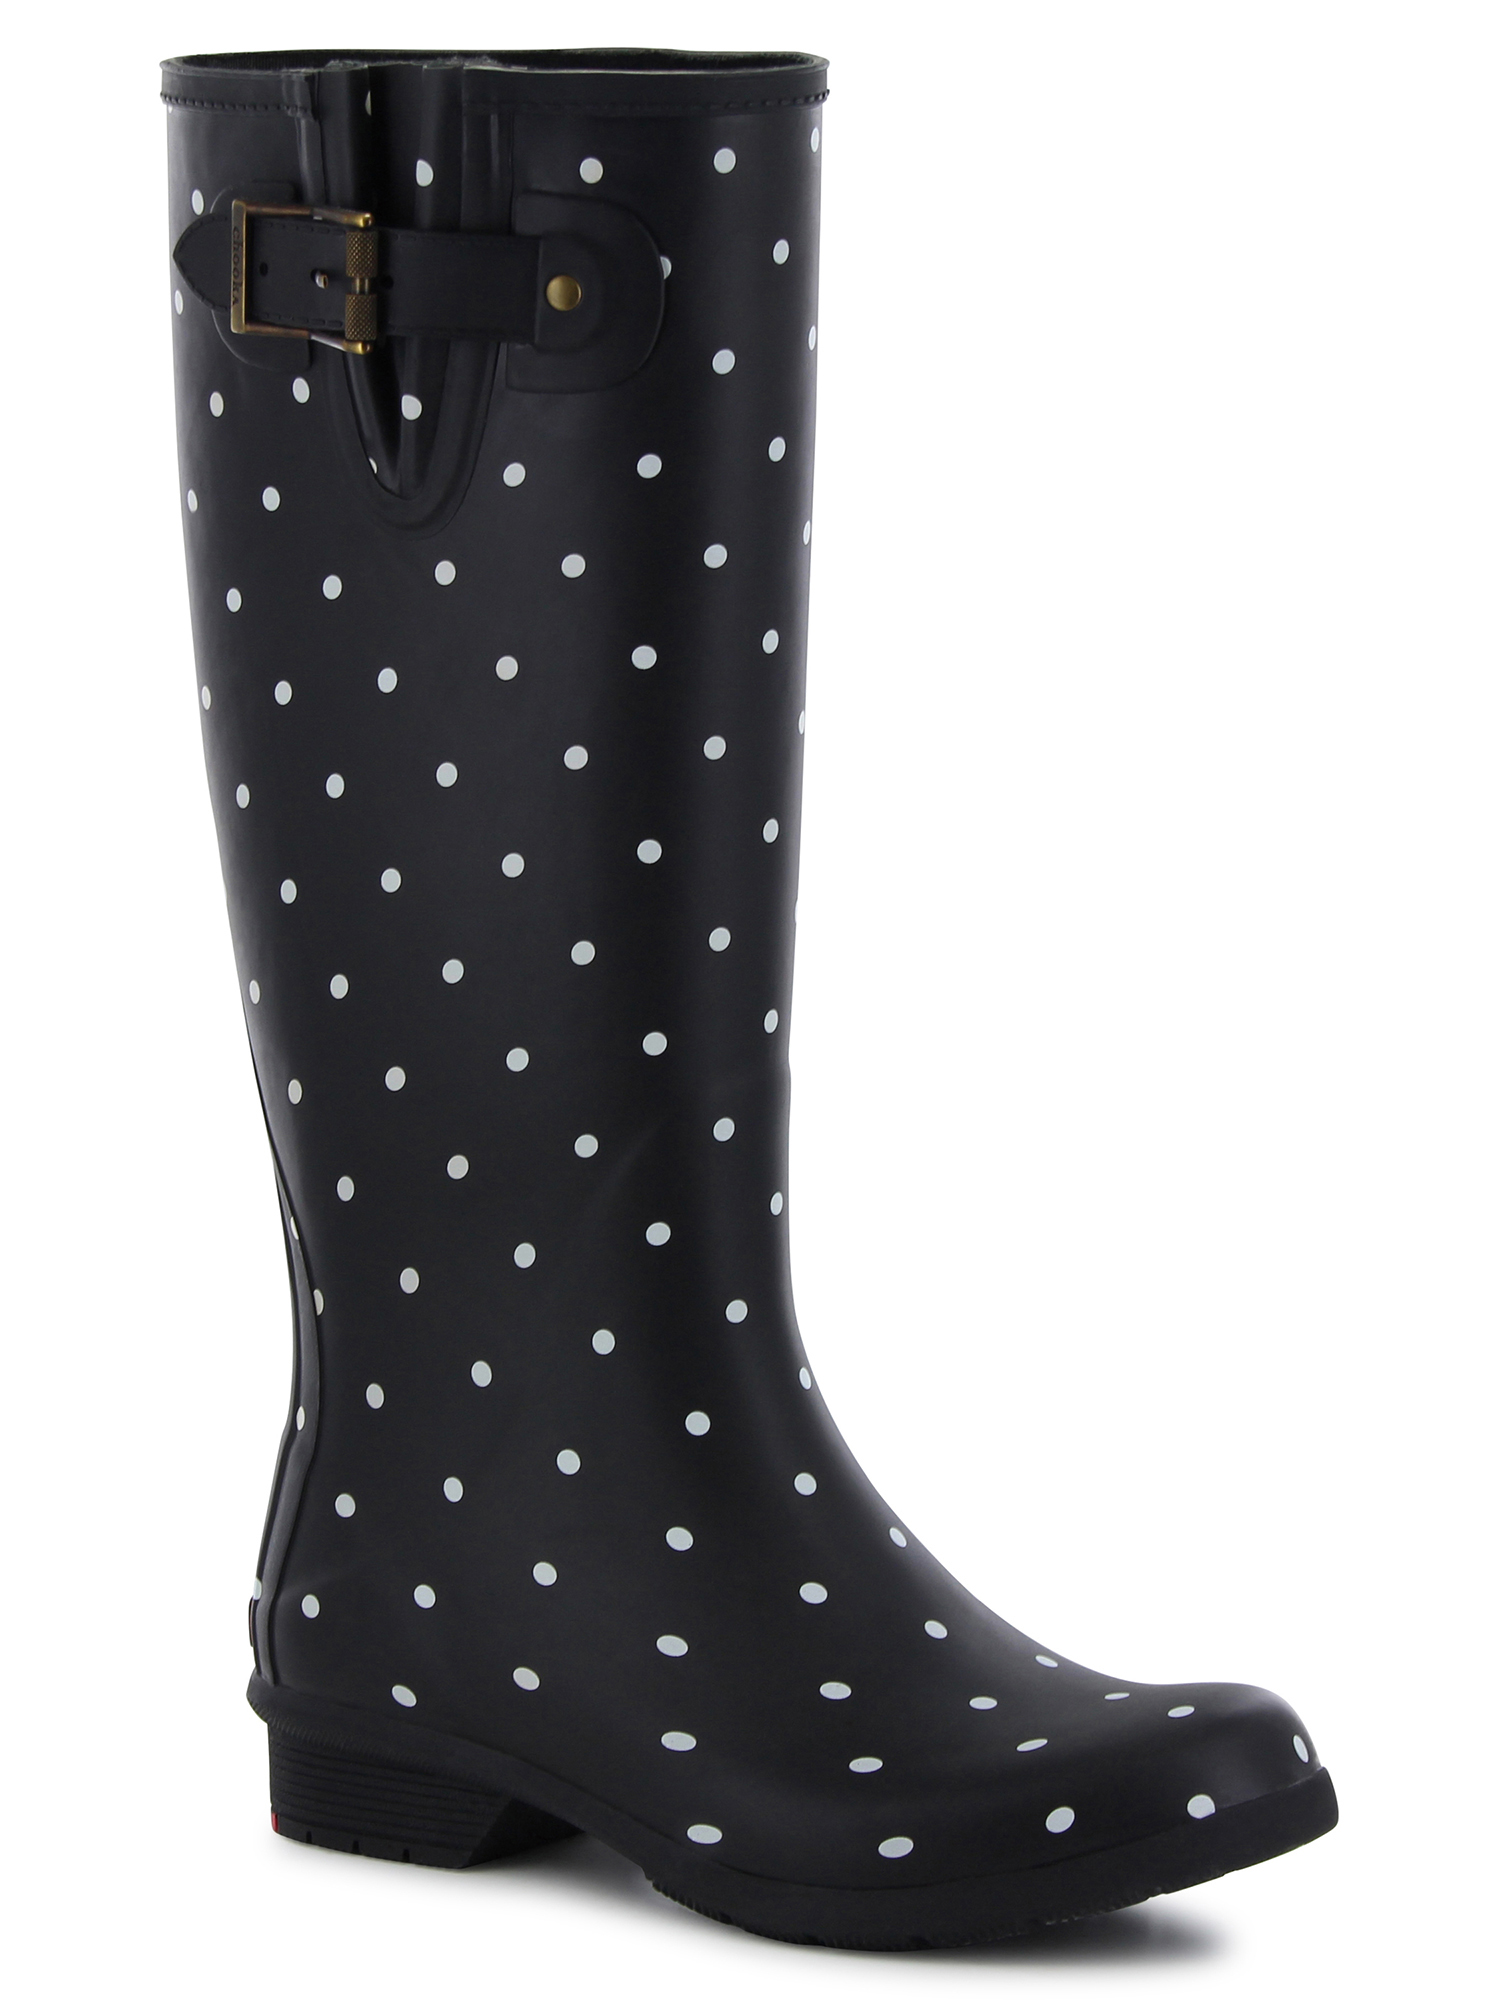 Chooka Woman's Dot Blanc Tall.